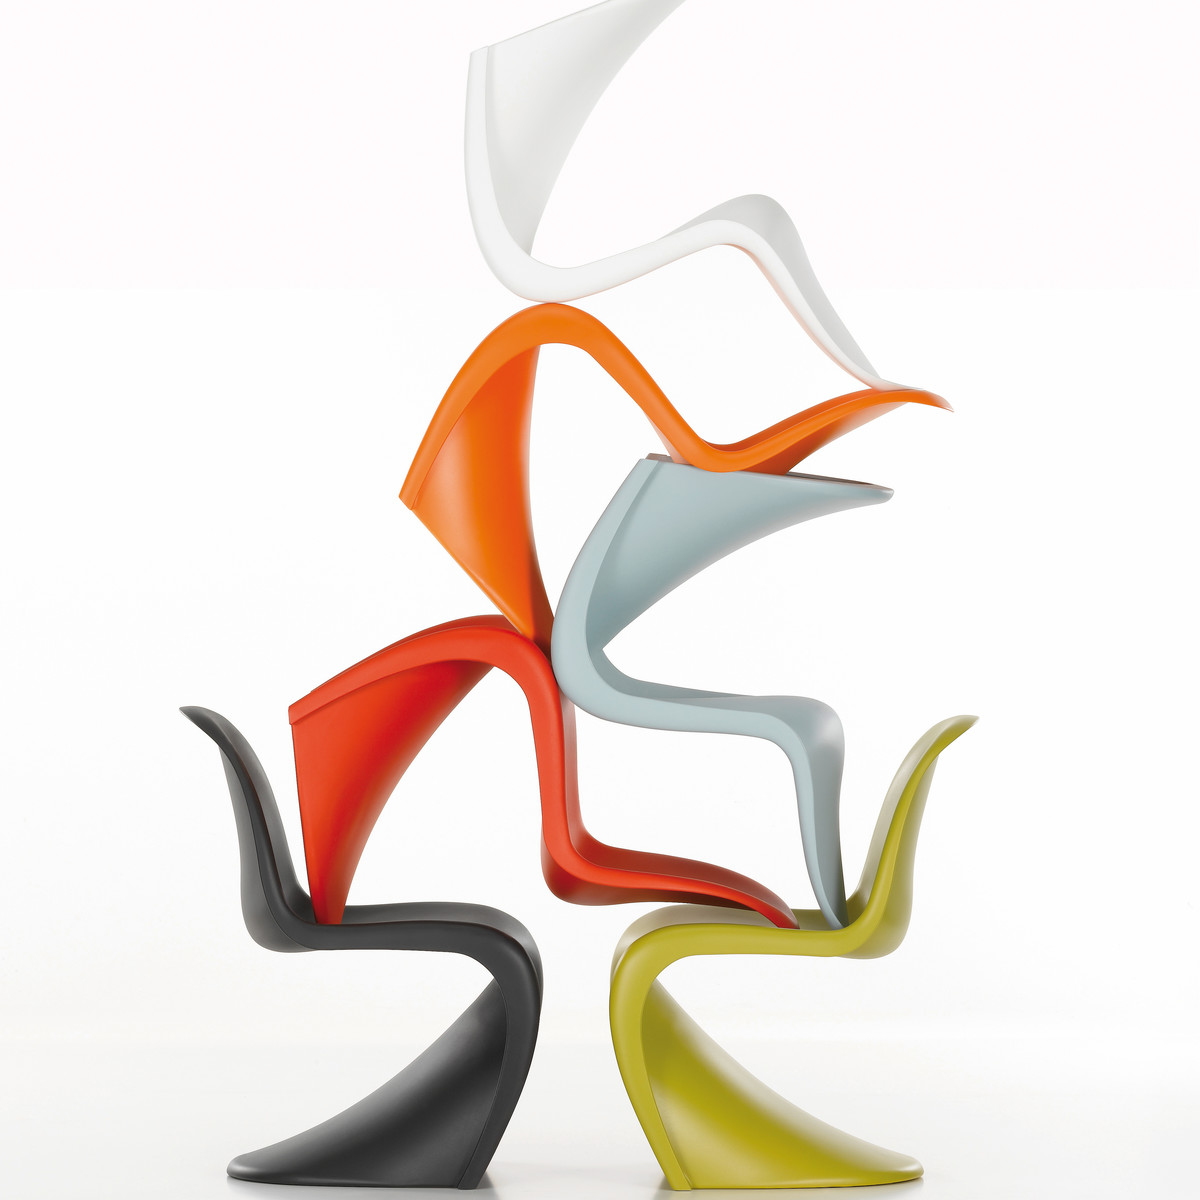 Panton Silla Panton Chair By Vitra In Our Interior Design Shop